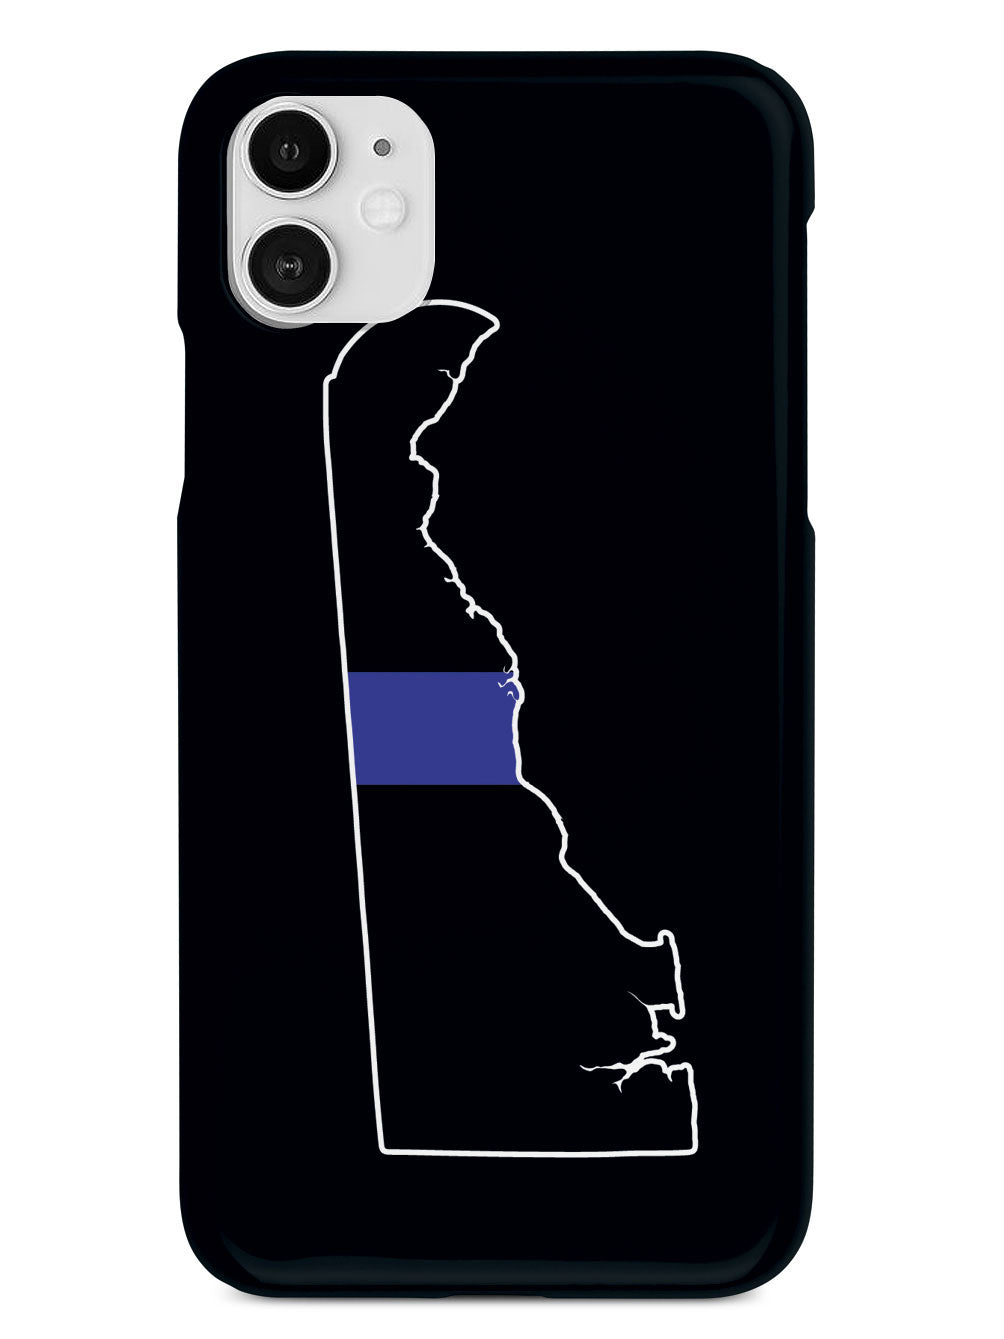 Thin Blue Line - Delaware Case